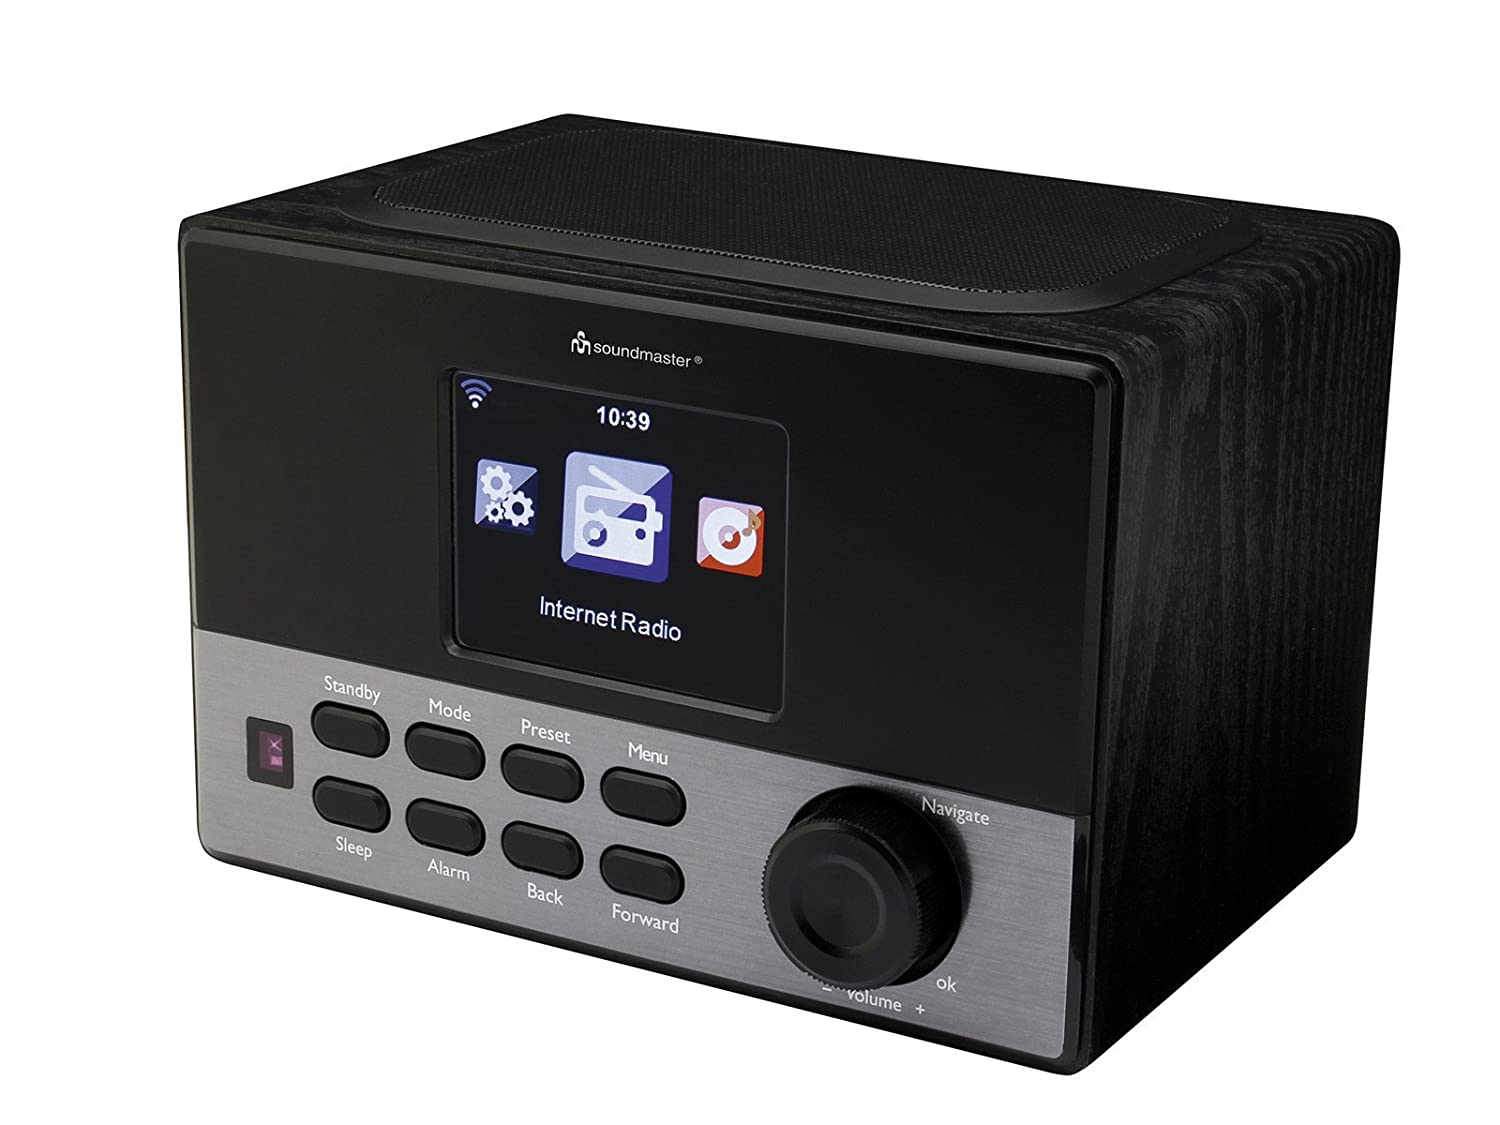 Soundmaster IR1100 Internet Noir – Radio Internet, batterie, MP3, WMA)